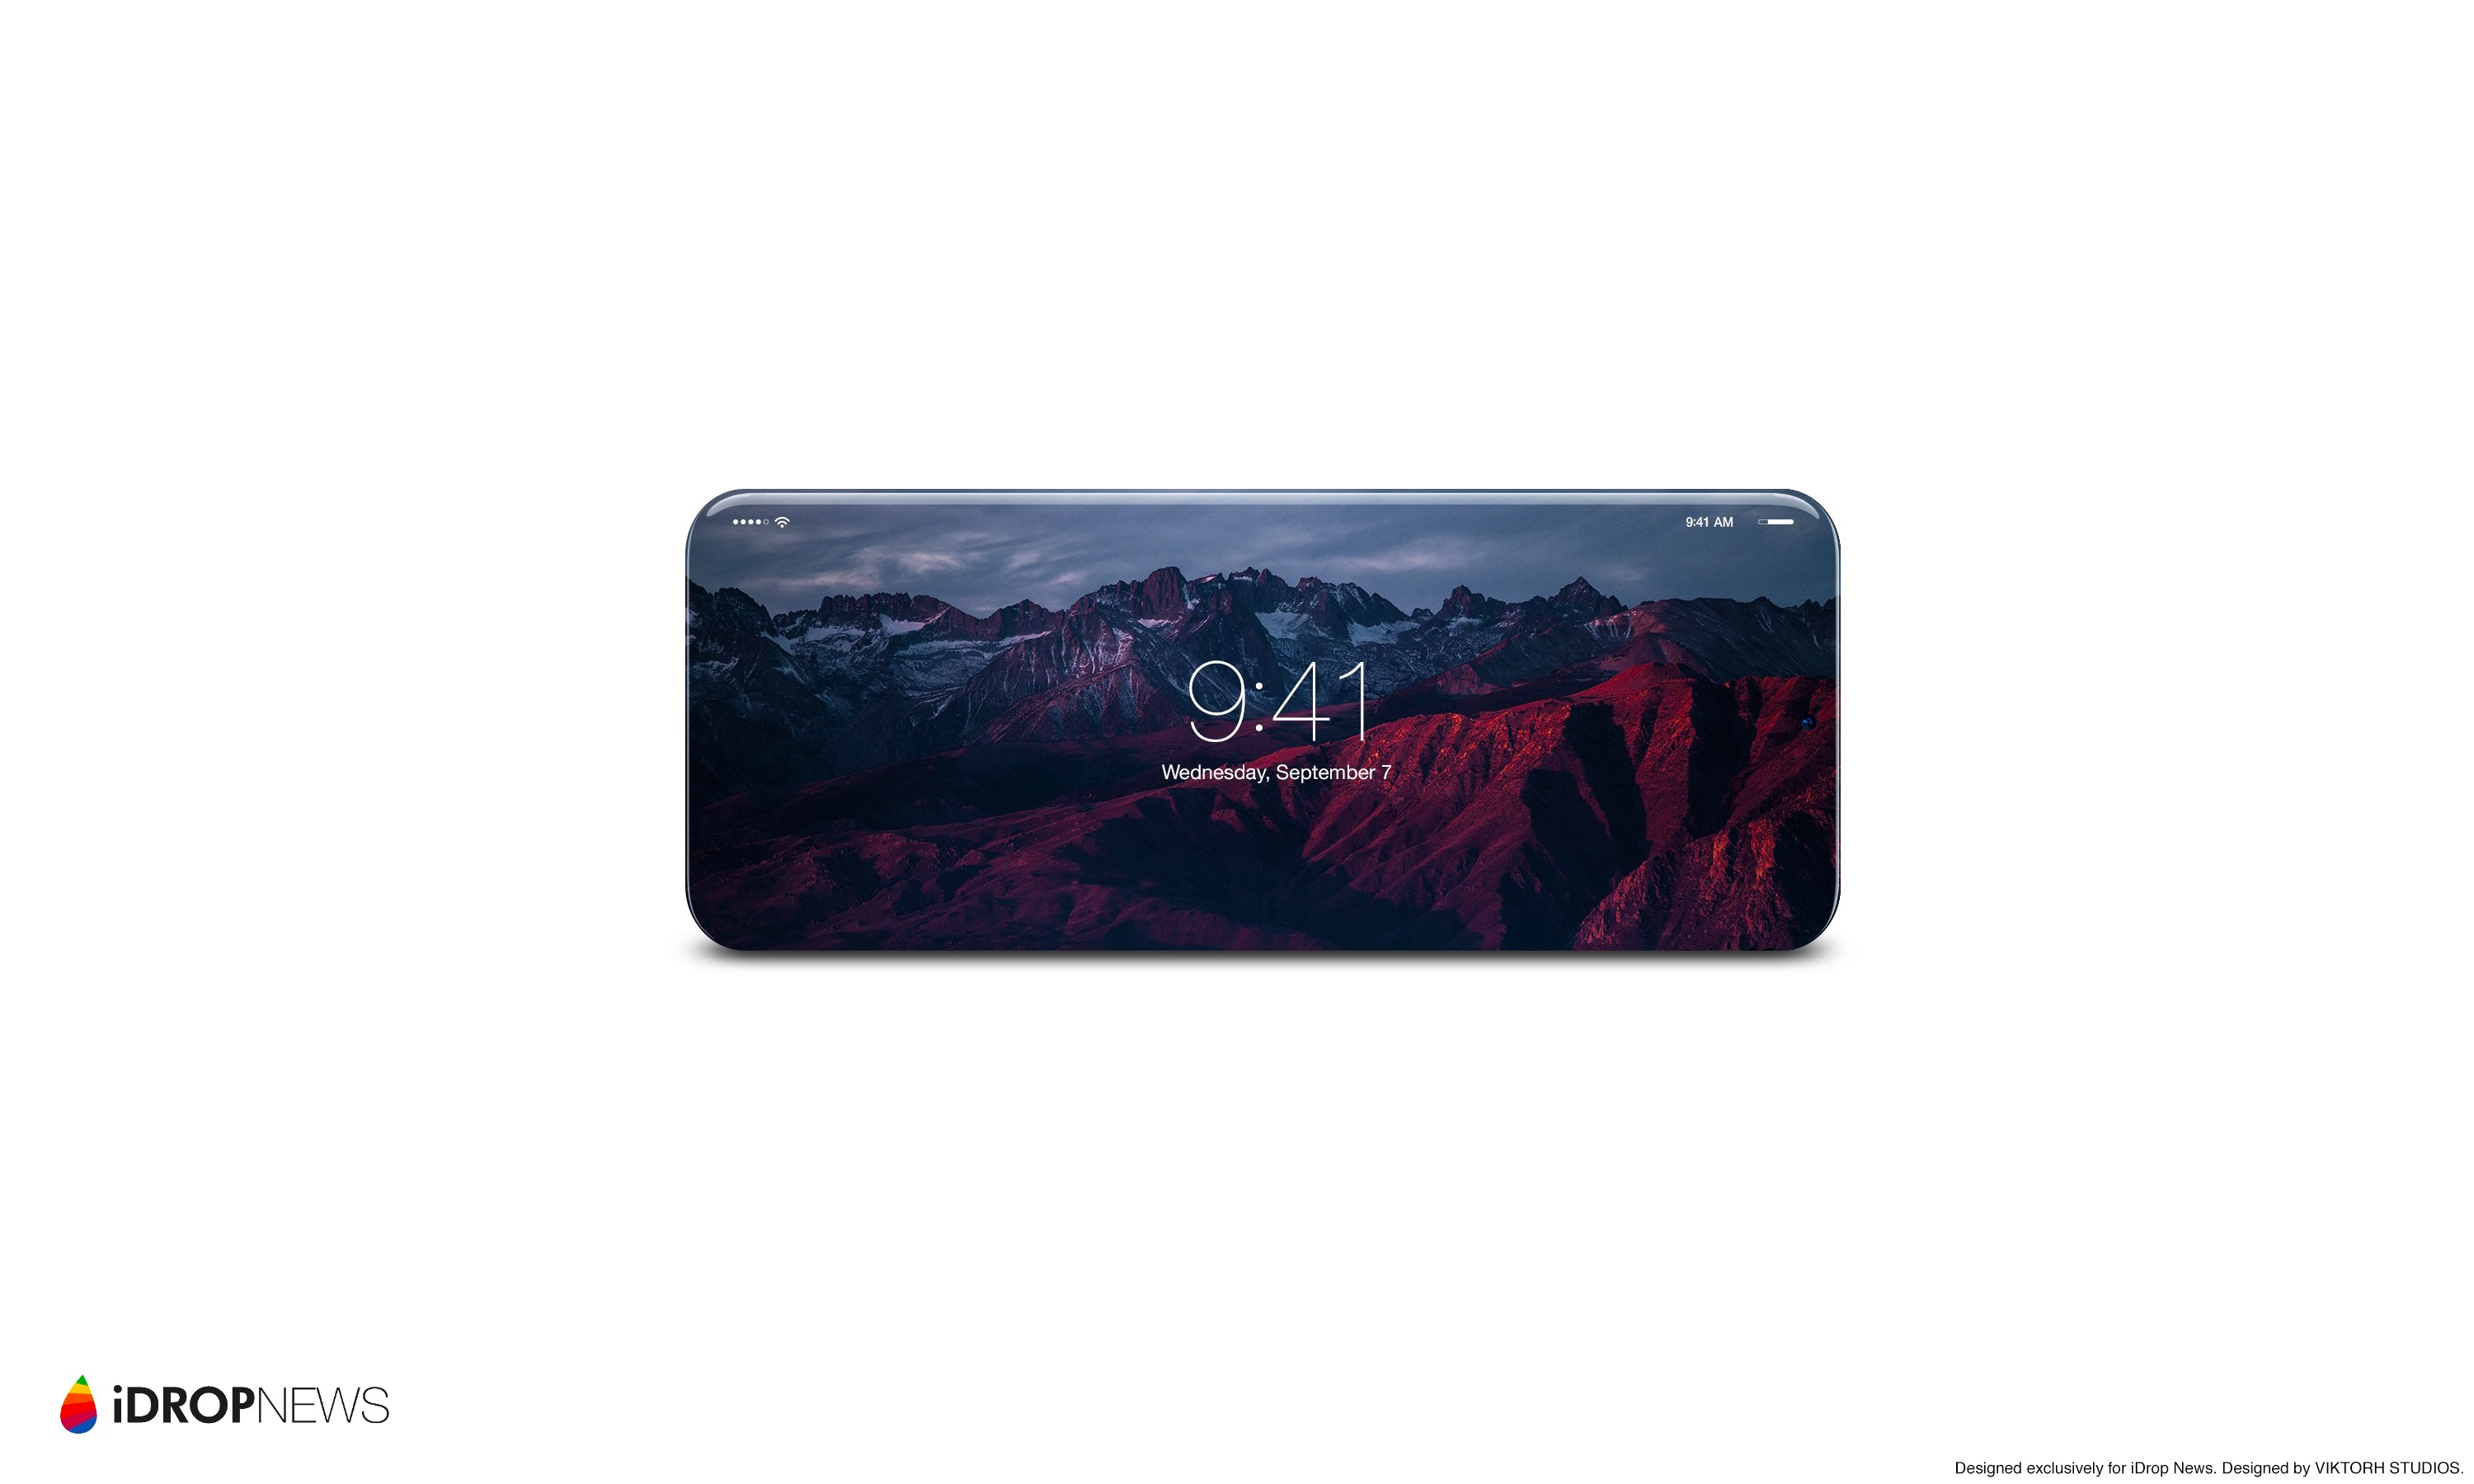 Foldable iPhone Concept Image